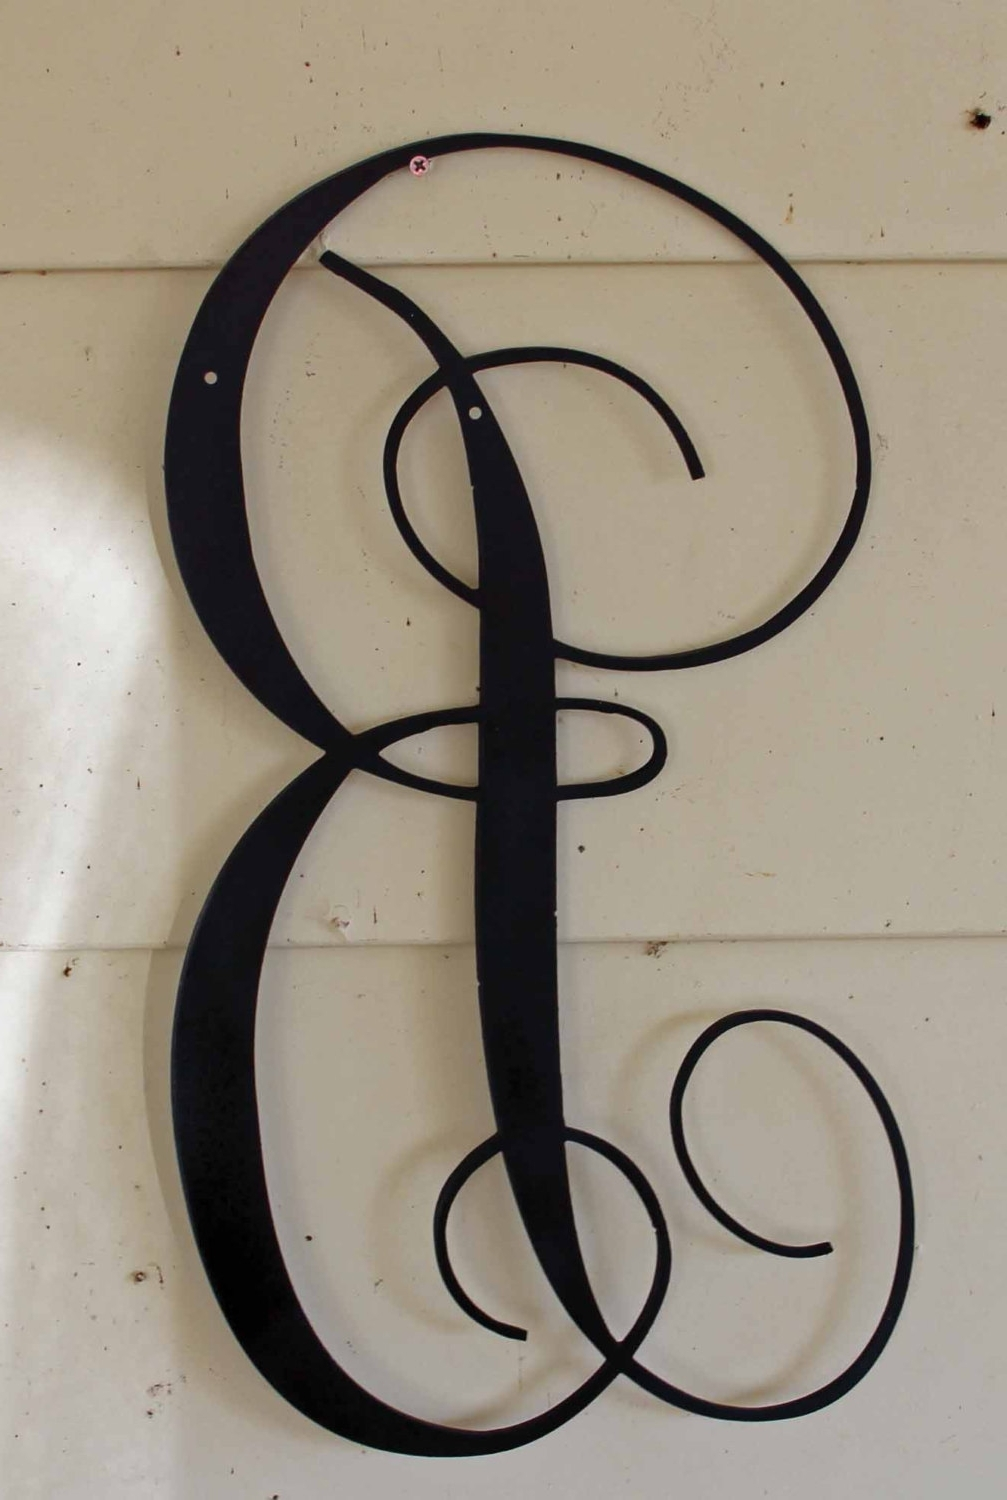 22 Inch Black Script Metal Letter B Door Or Wall Hanging Regarding Well Known Decorative Metal Letters Wall Art (View 1 of 15)